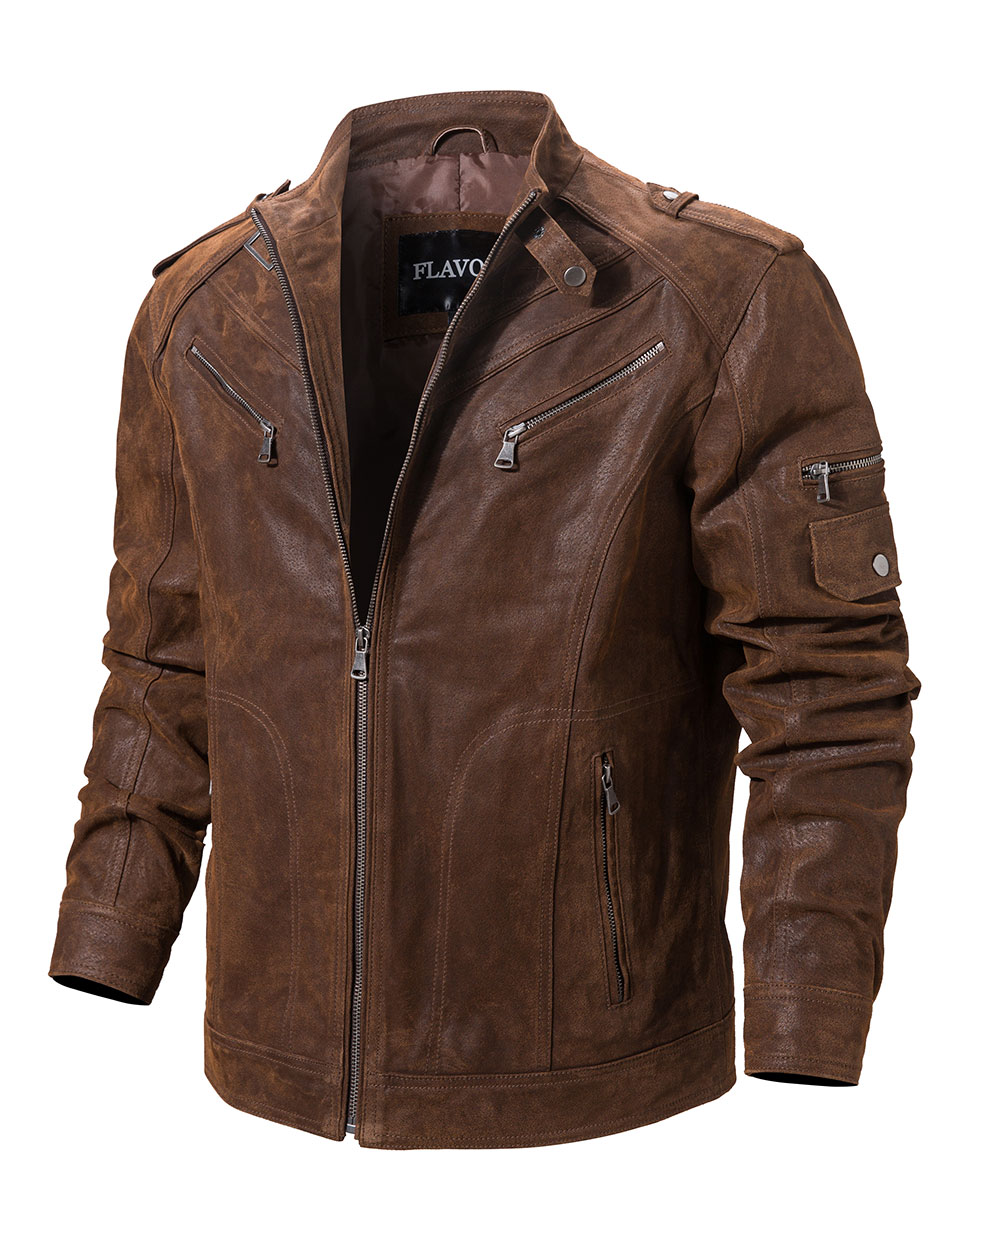 H8c1755bf548745bfbb6feae429e59a98a Men's Pigskin Real Leather Jacket Genuine Leather Jackets Motorcycle Jacket Coat Men